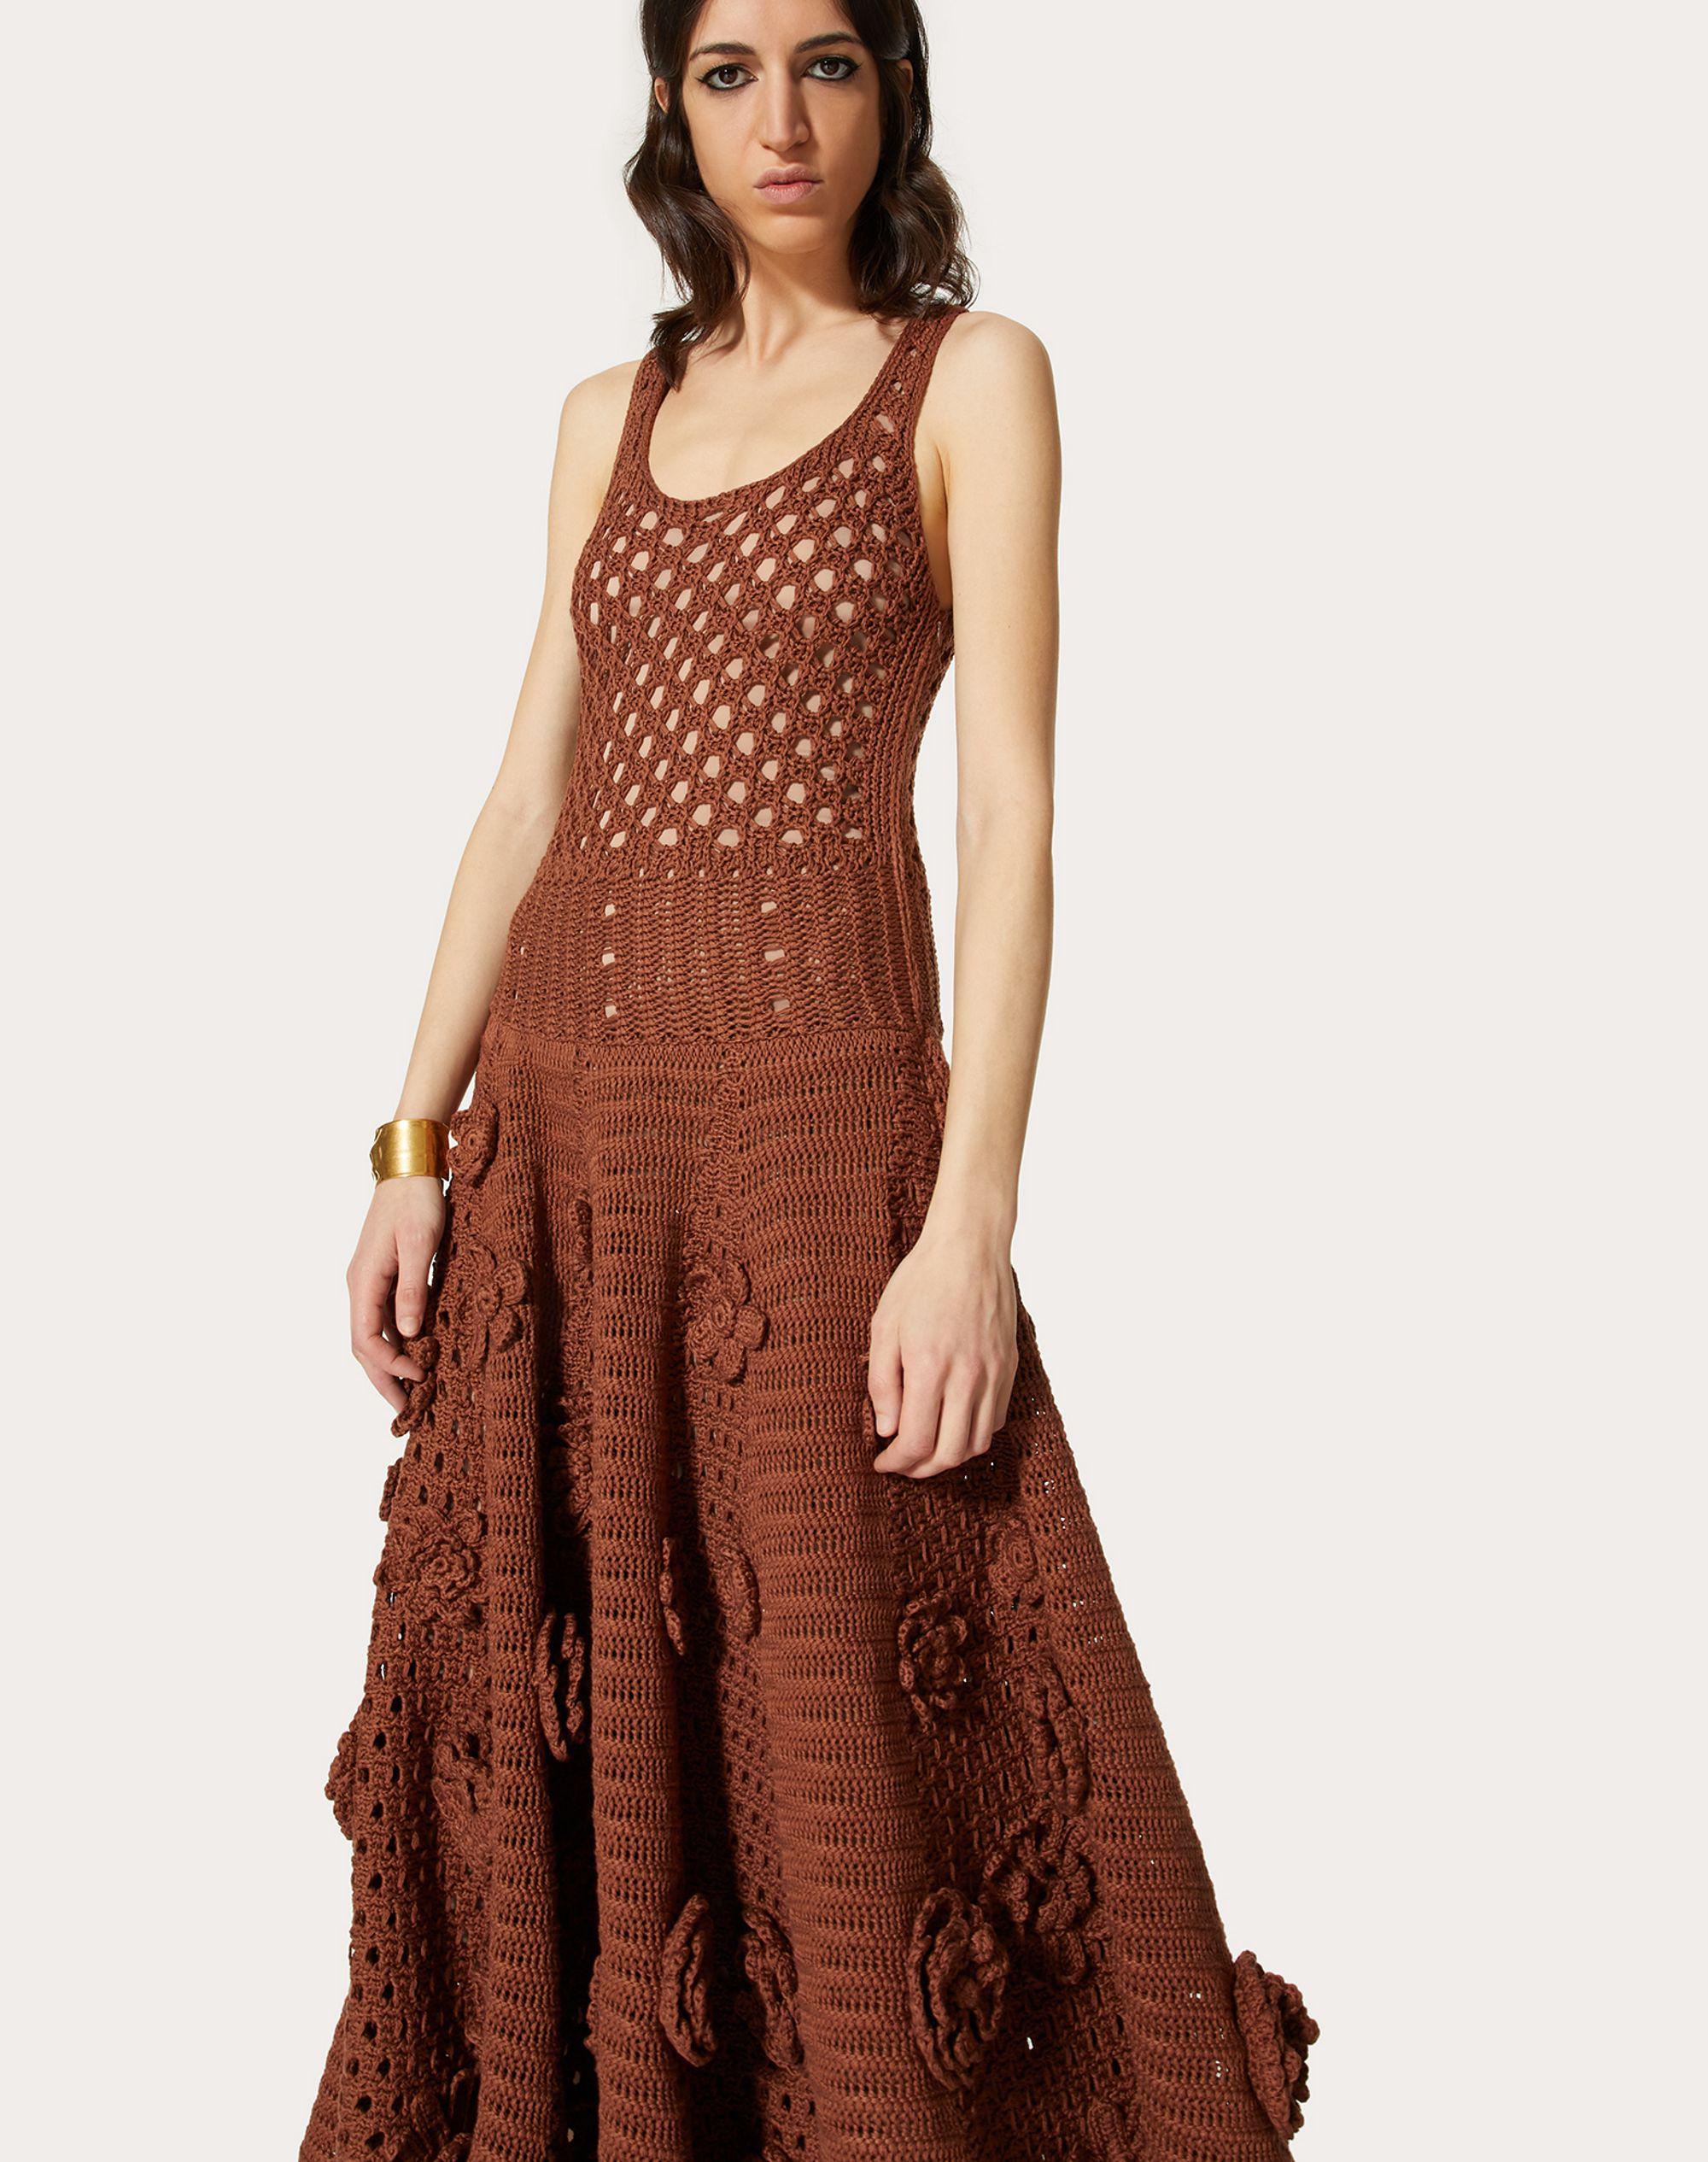 EMBROIDERED COTTON KNITTED DRESS 3